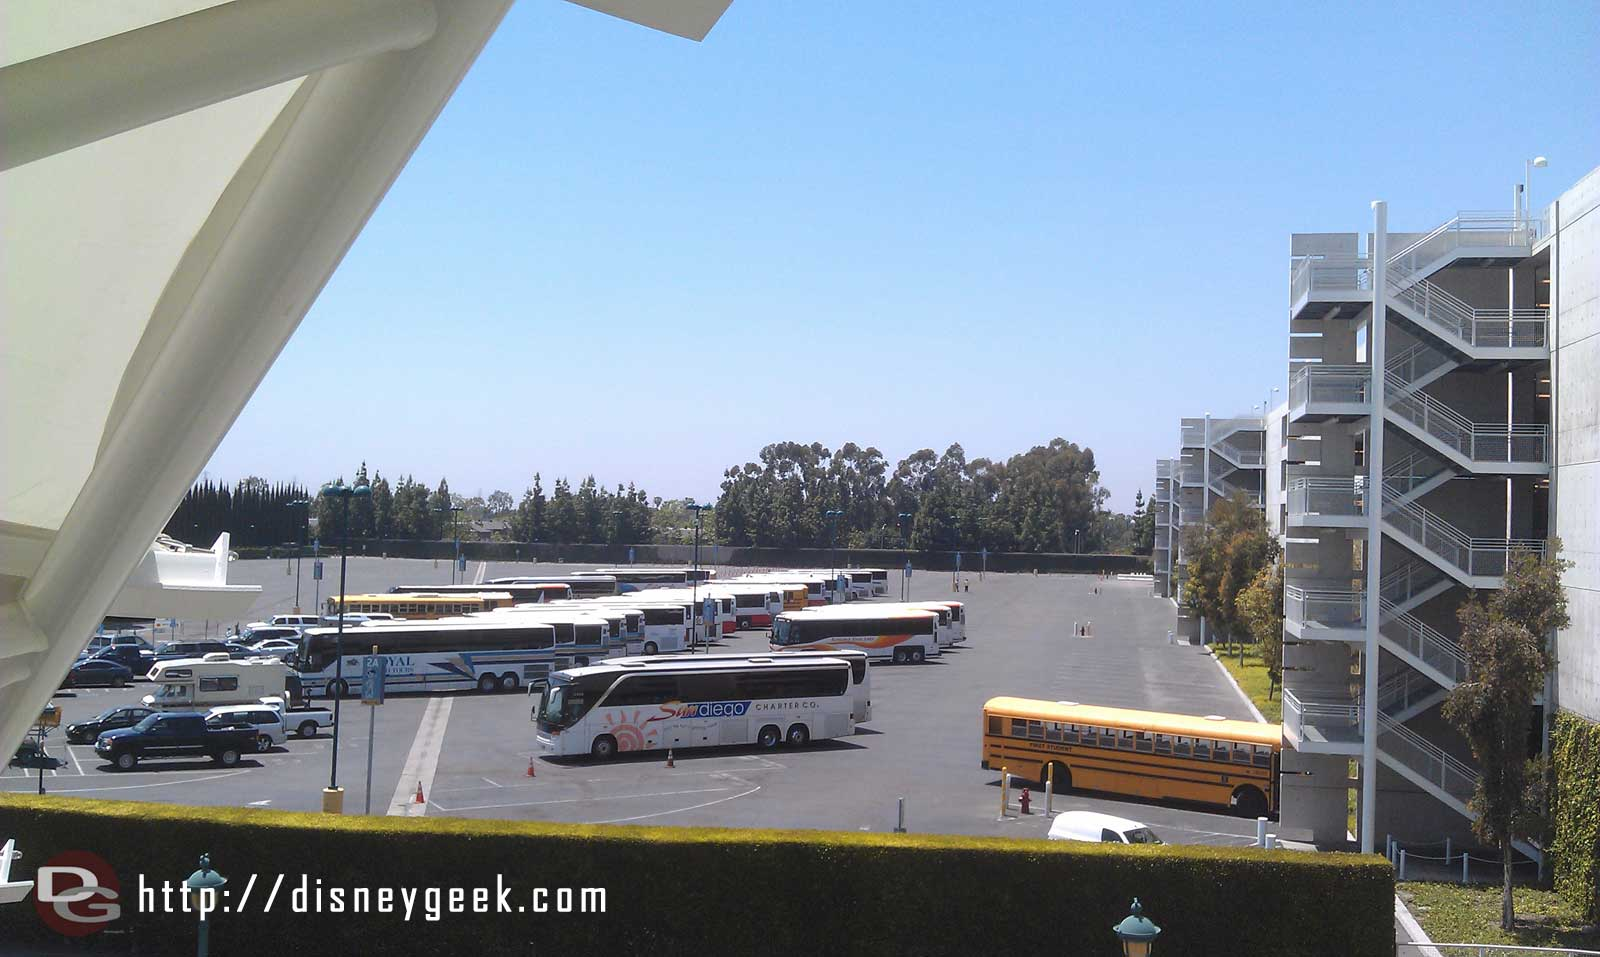 Just arrived at the #Disneyland Resort for the afternoon/evening.  Not that many buses in the lot yet.